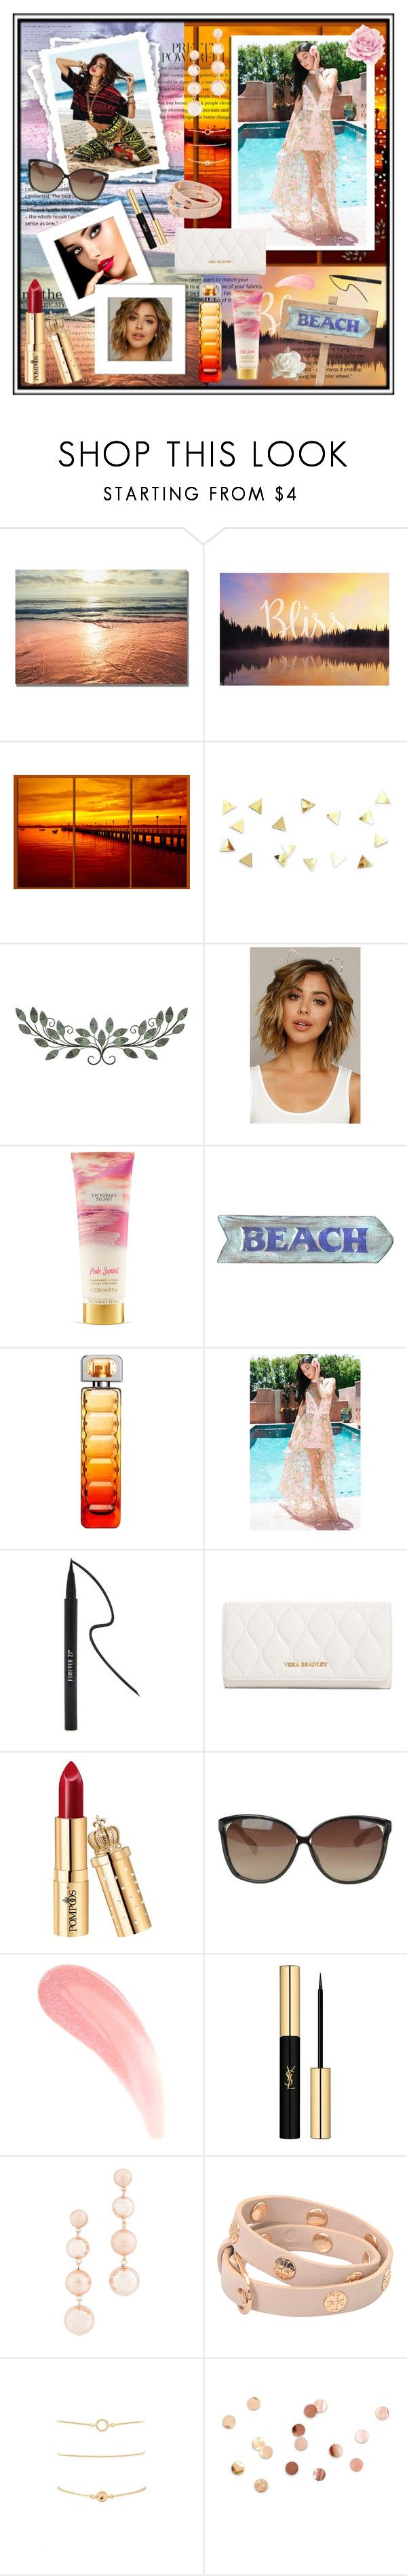 """""""Sunset"""" by xorozetaxo ❤ liked on Polyvore featuring Victoria's Secret, HUGO, Forever 21, Vera Bradley, Linda Farrow, Yves Saint Laurent, Rebecca Minkoff, Tory Burch and Umbra"""